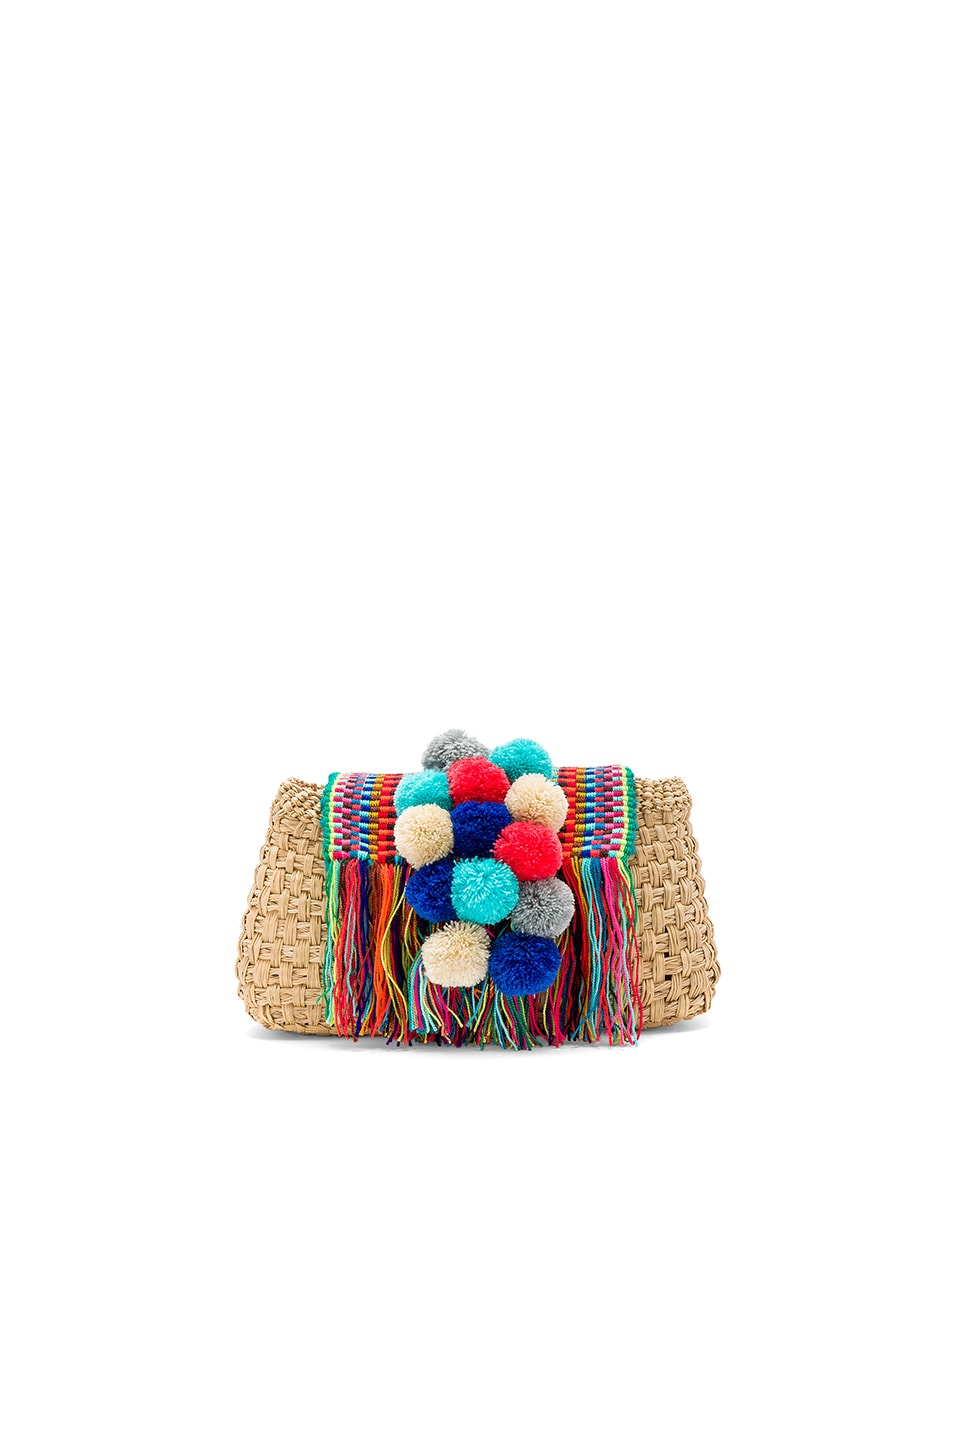 Caffe Pom Pom Clutch in Natural